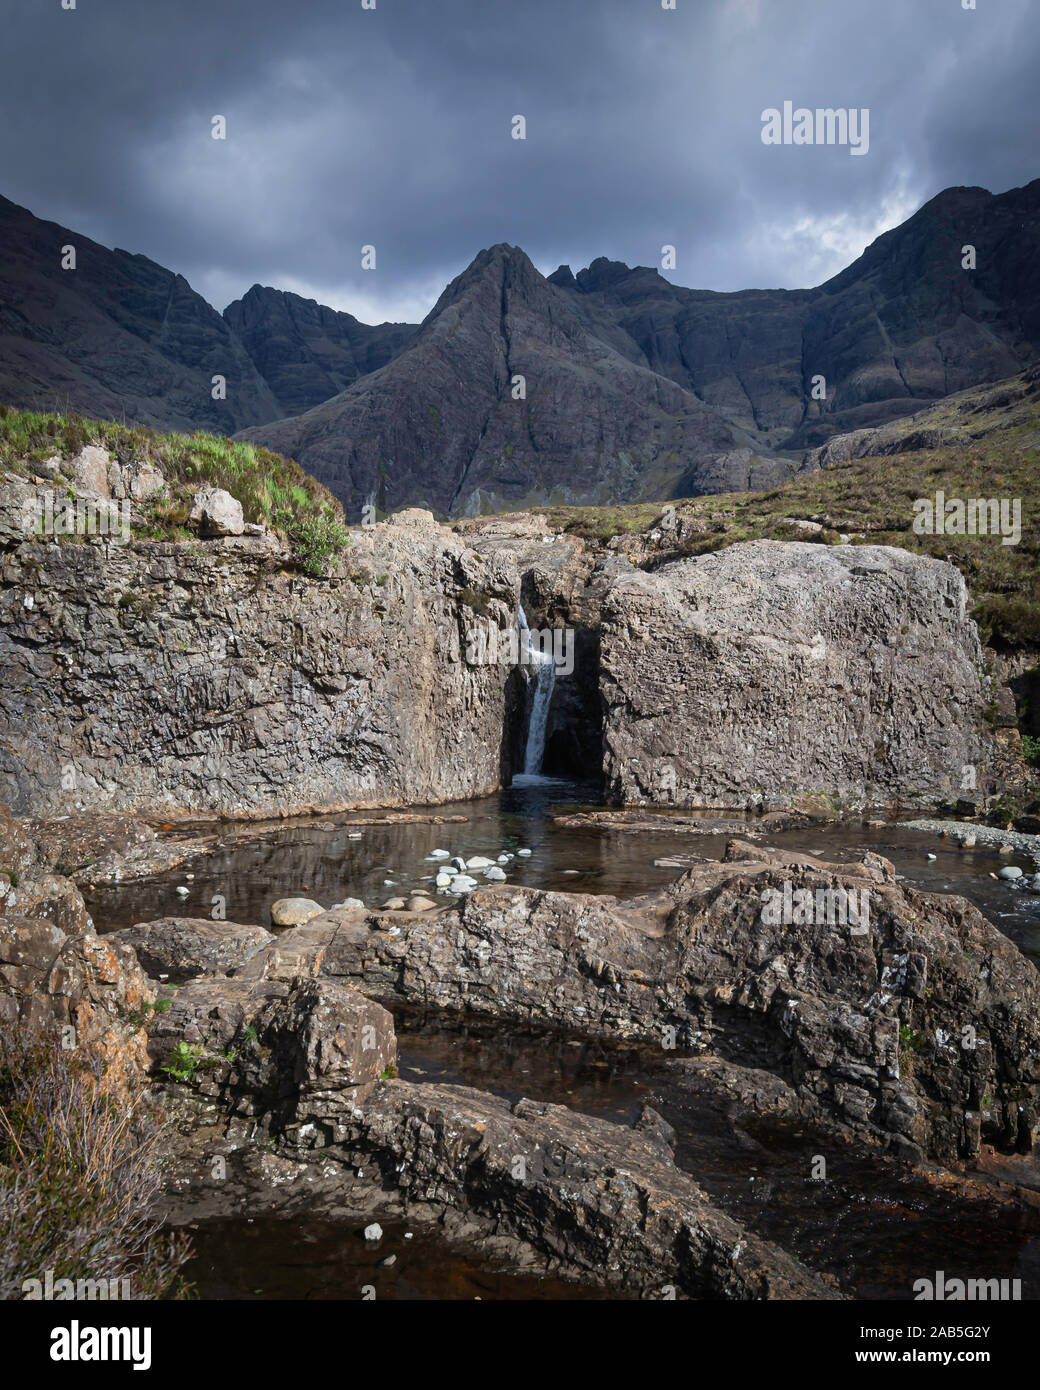 Moody sky above mountain range and small waterfall in rocky terrain in foreground.Fairy pools on Isle of Skye, Scotland,UK.Popular tourists attraction. Stock Photo